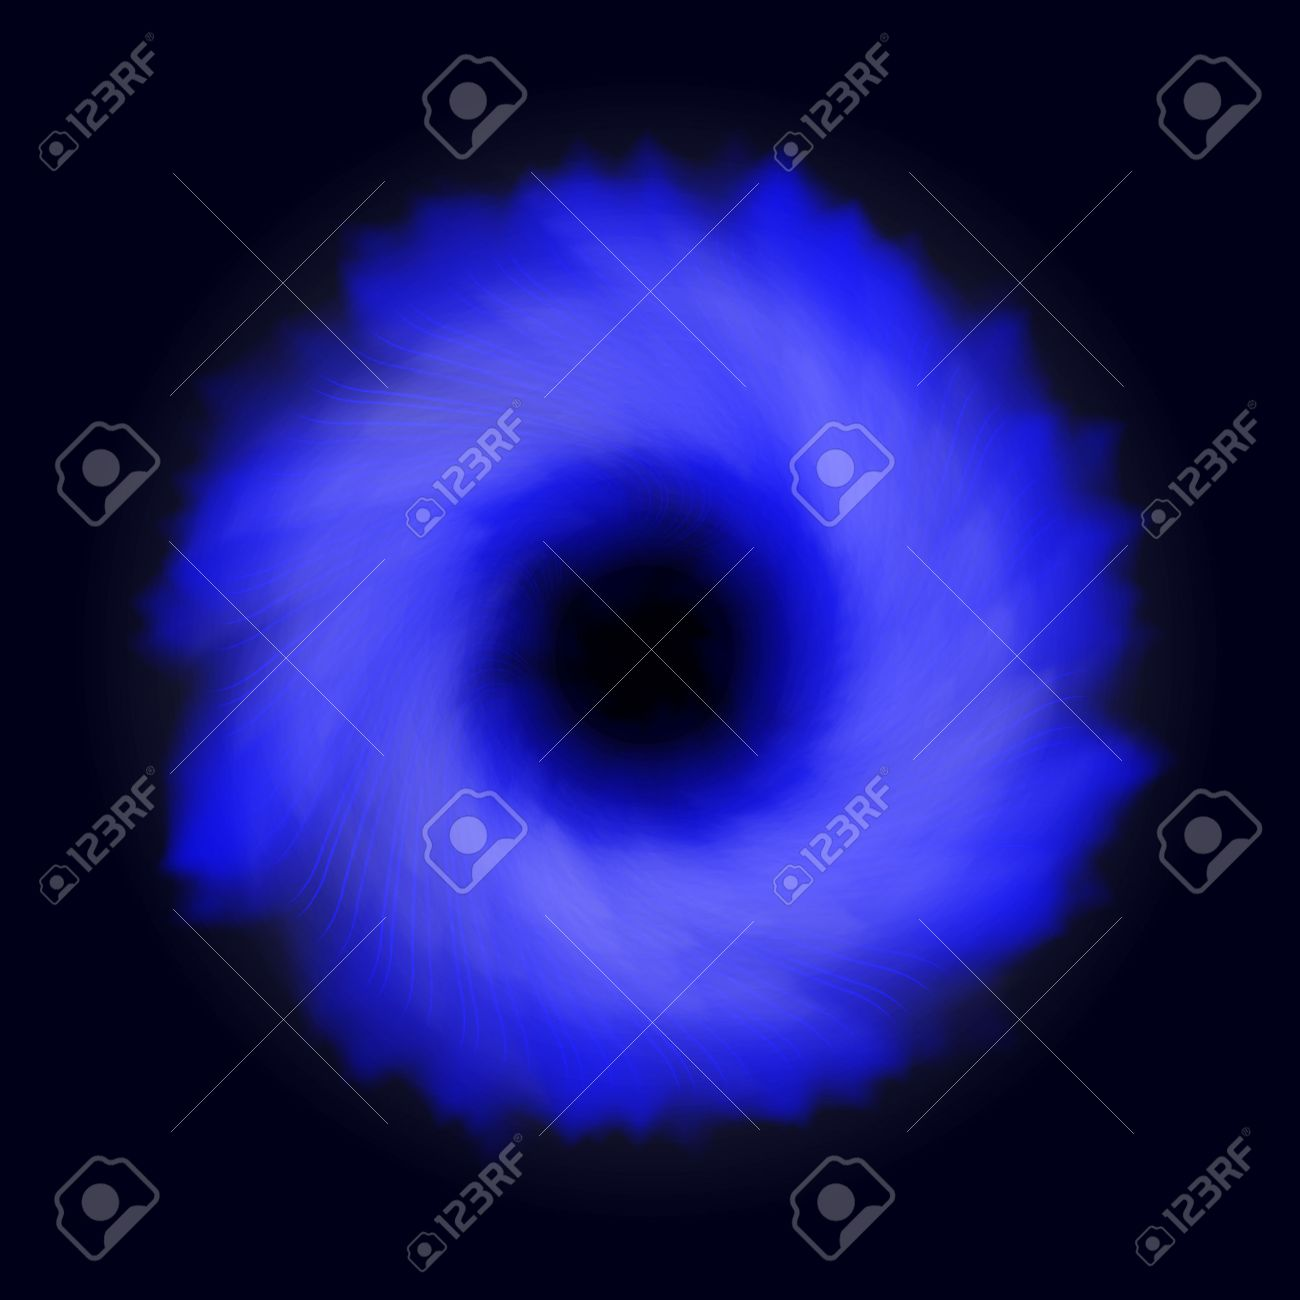 transparent black hole light effect space vortex blue abstract background design of blue